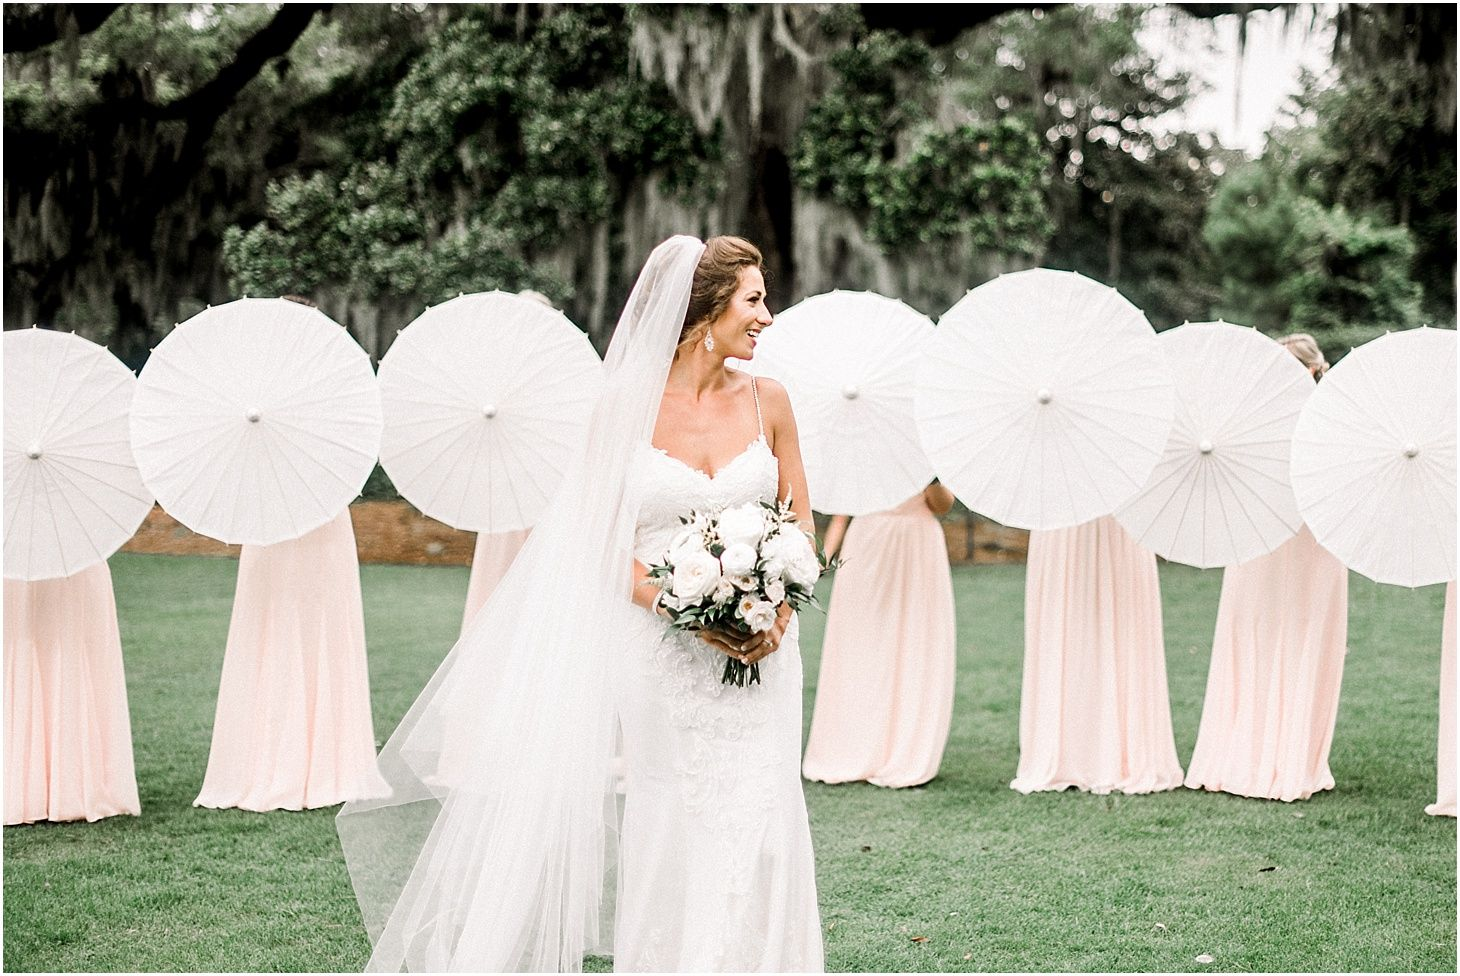 Kate Supa Photography White Umbrella Wedding Umbrella Wedding Decorations Umbrella Wedding Wedding